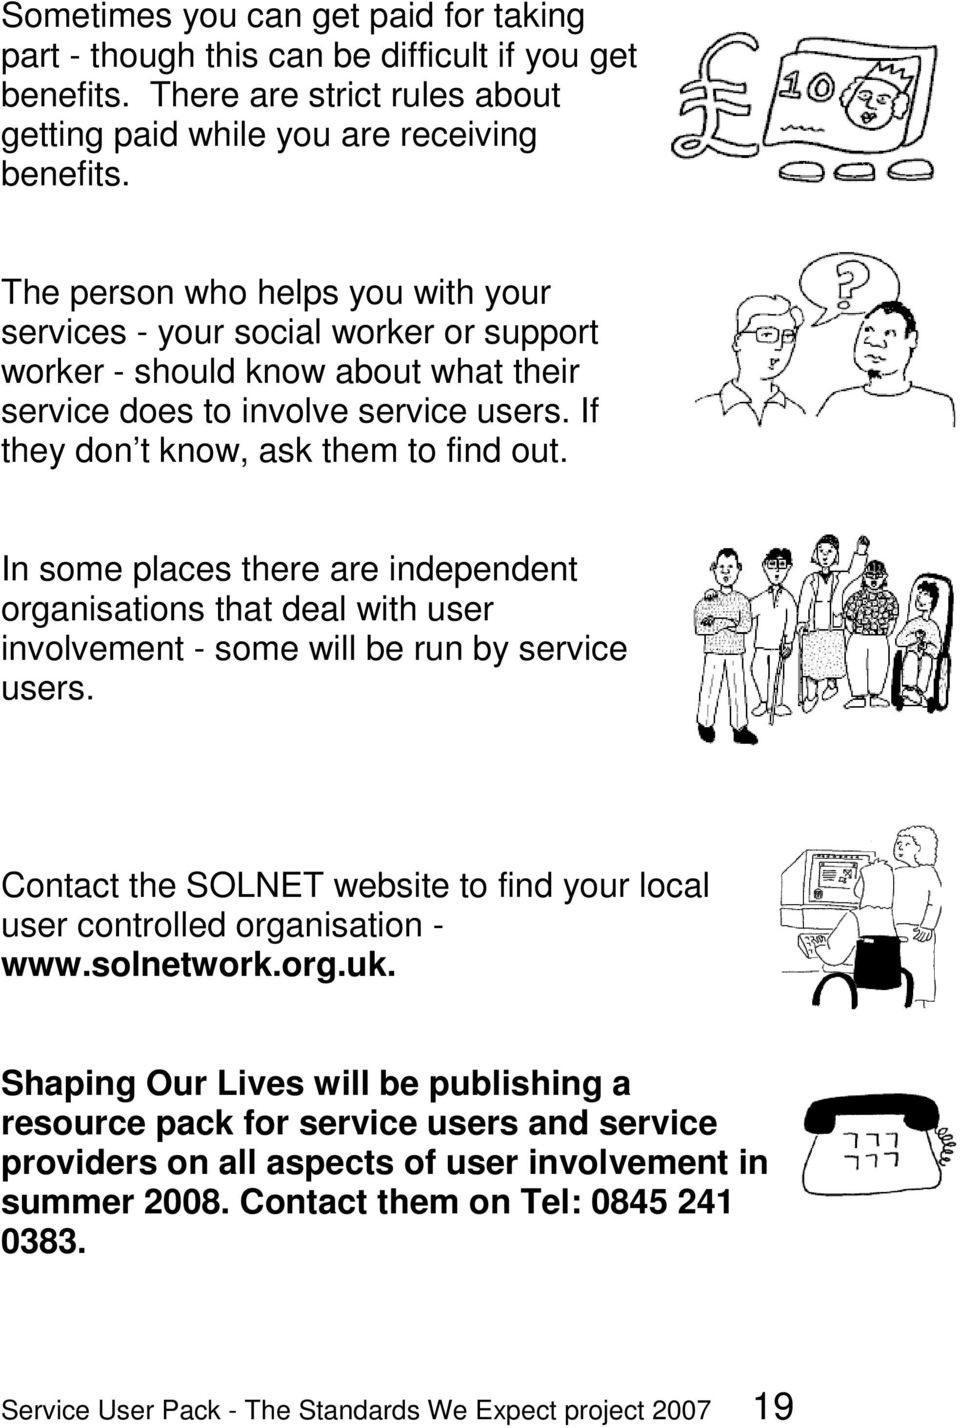 In some places there are independent organisations that deal with user involvement - some will be run by service users.